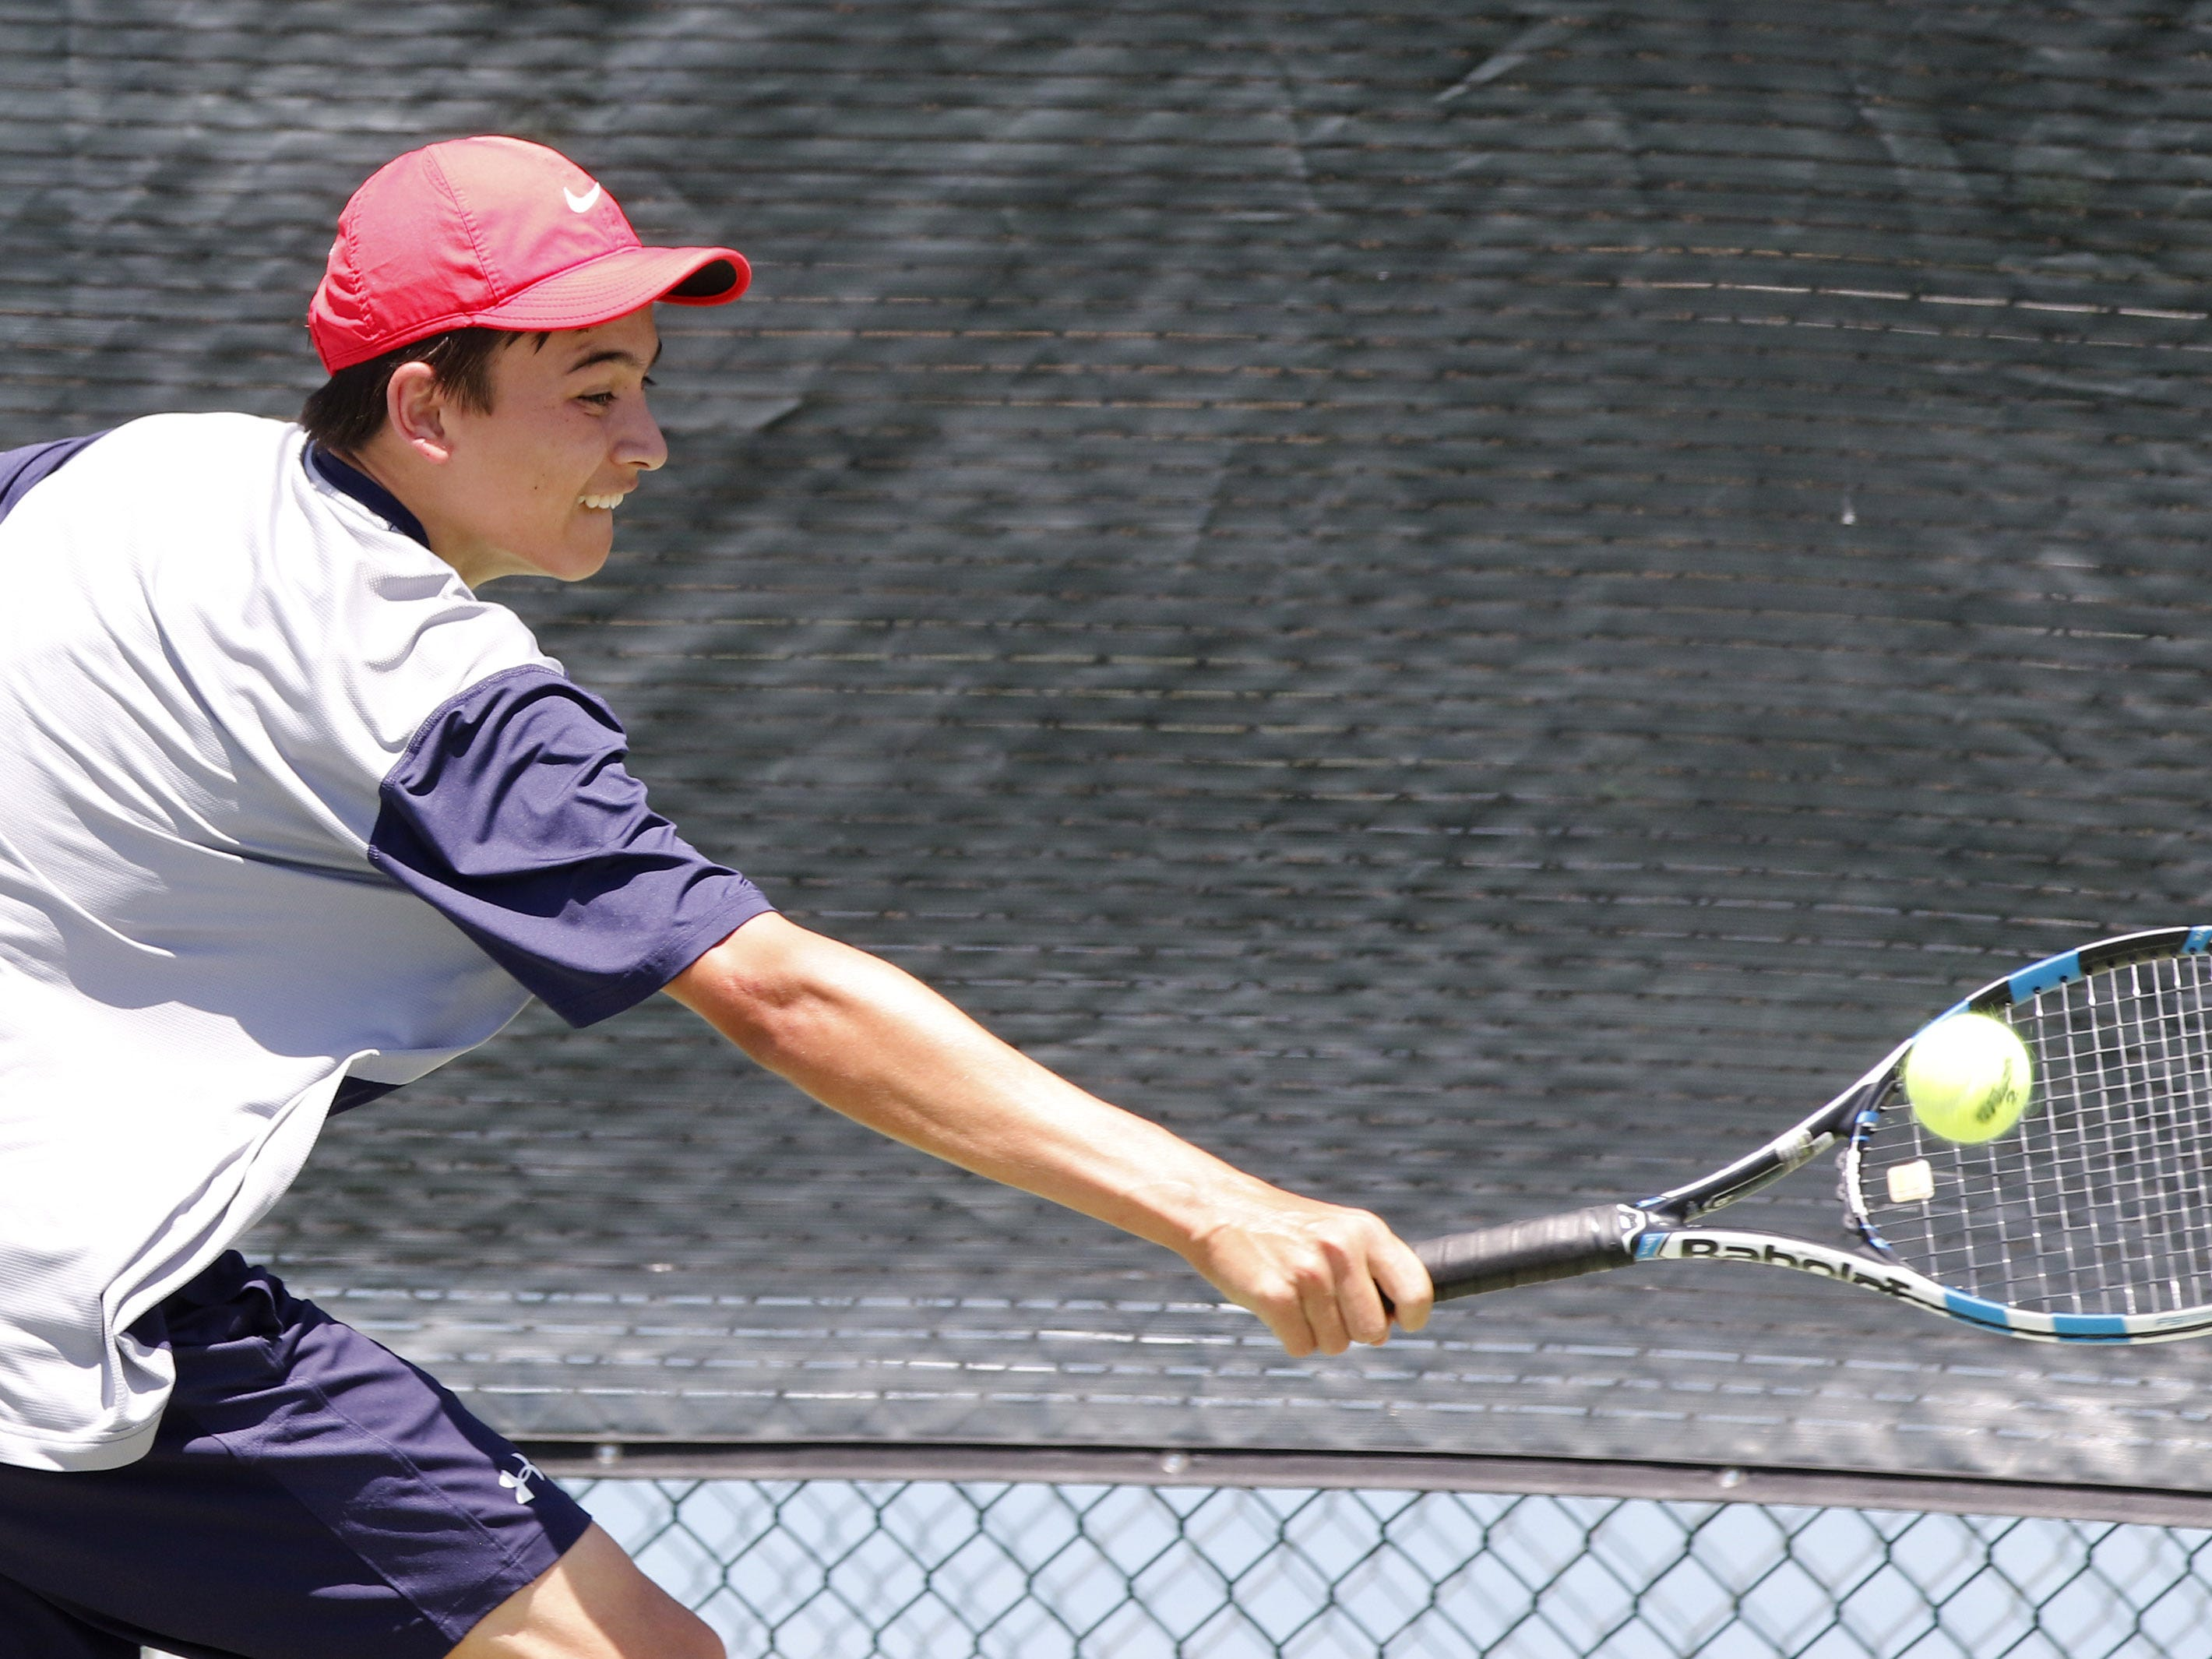 Scottsdale Prep's Jack Swensen backhands a shot against Phoenix Country Day's Ashton Kroger during the Division III tennis team state championship in Glendale, Arizona, May 04, 2019.